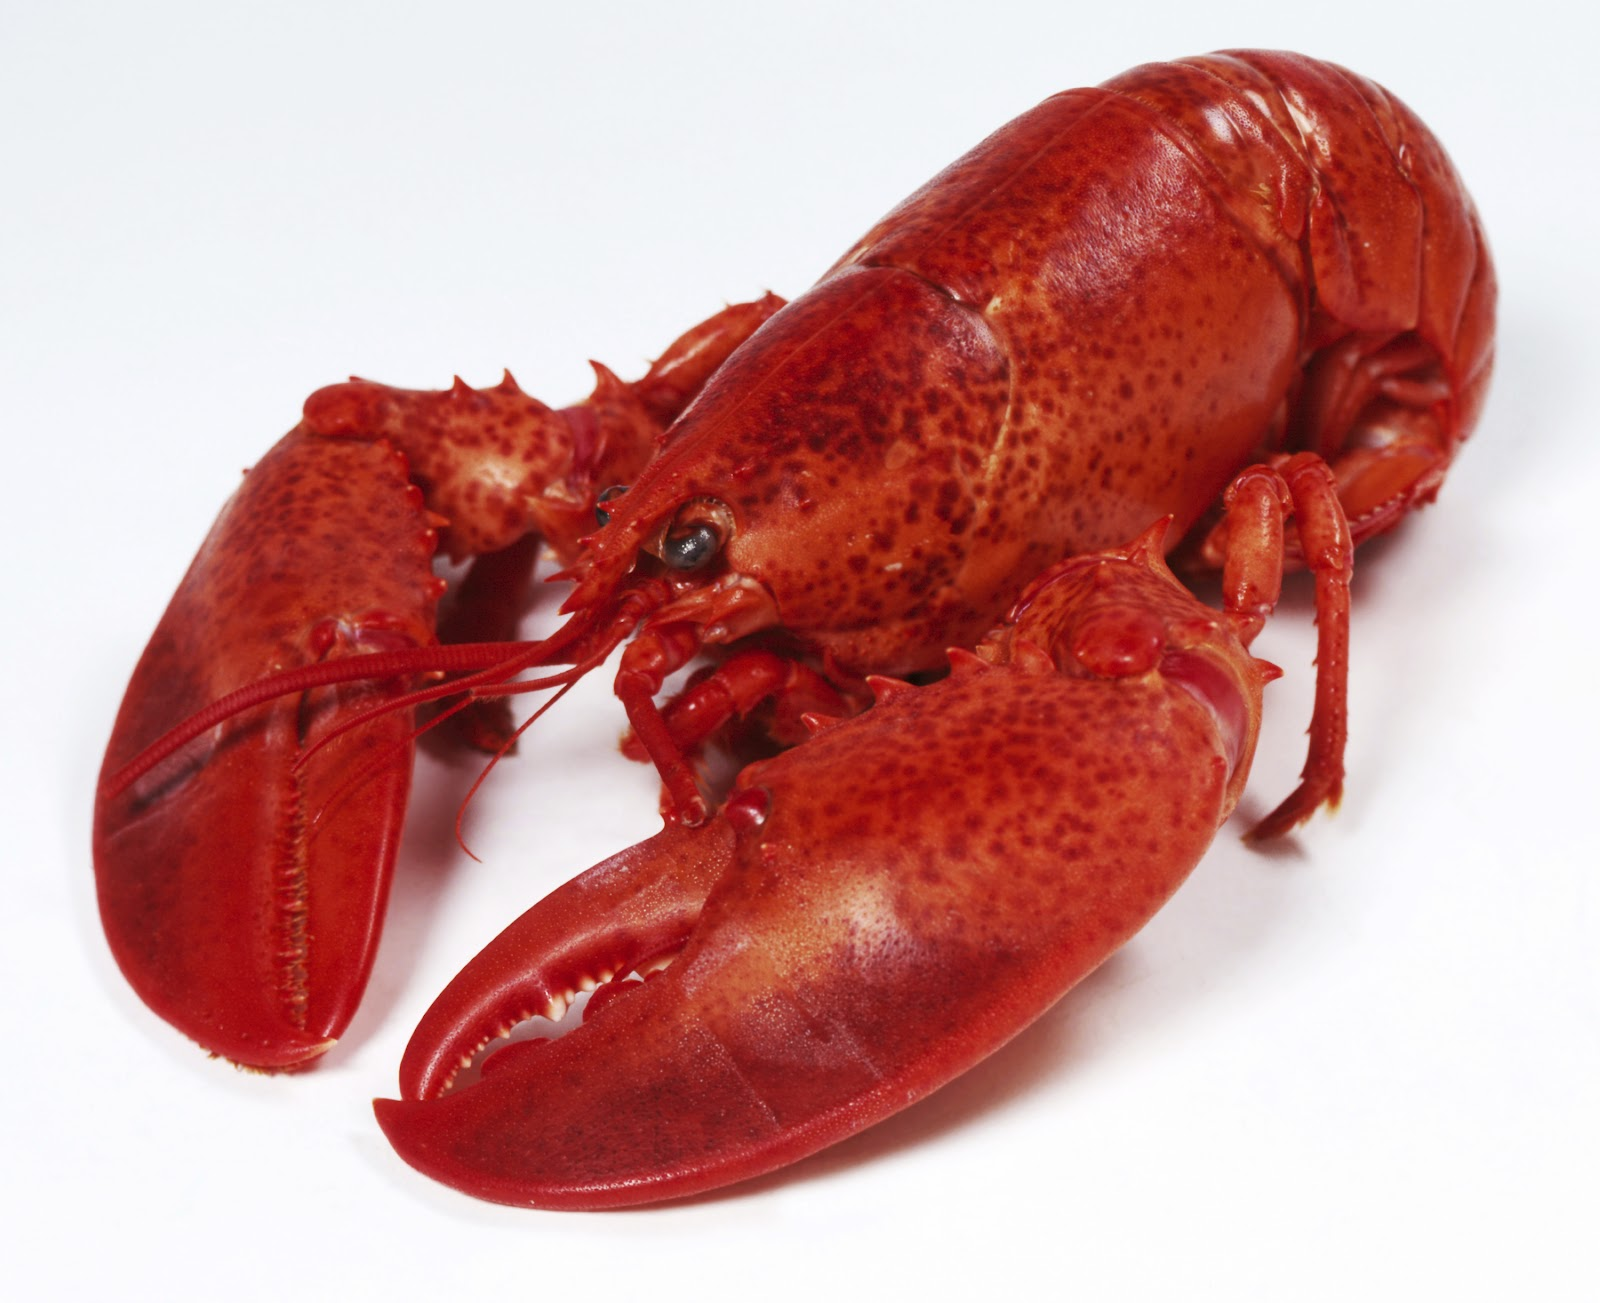 Deliciously Gluten Free: Lobster is Gluten Free